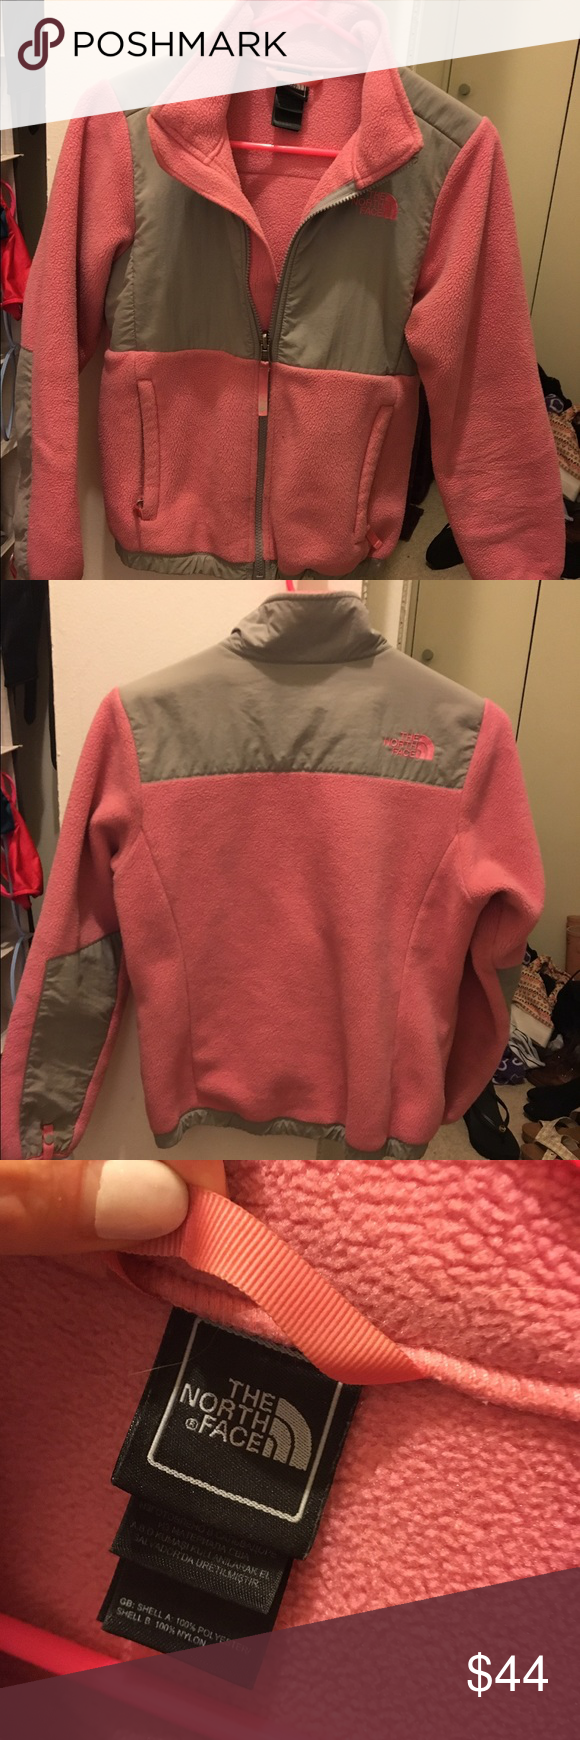 North face denali fleece jacket used many times size is child m